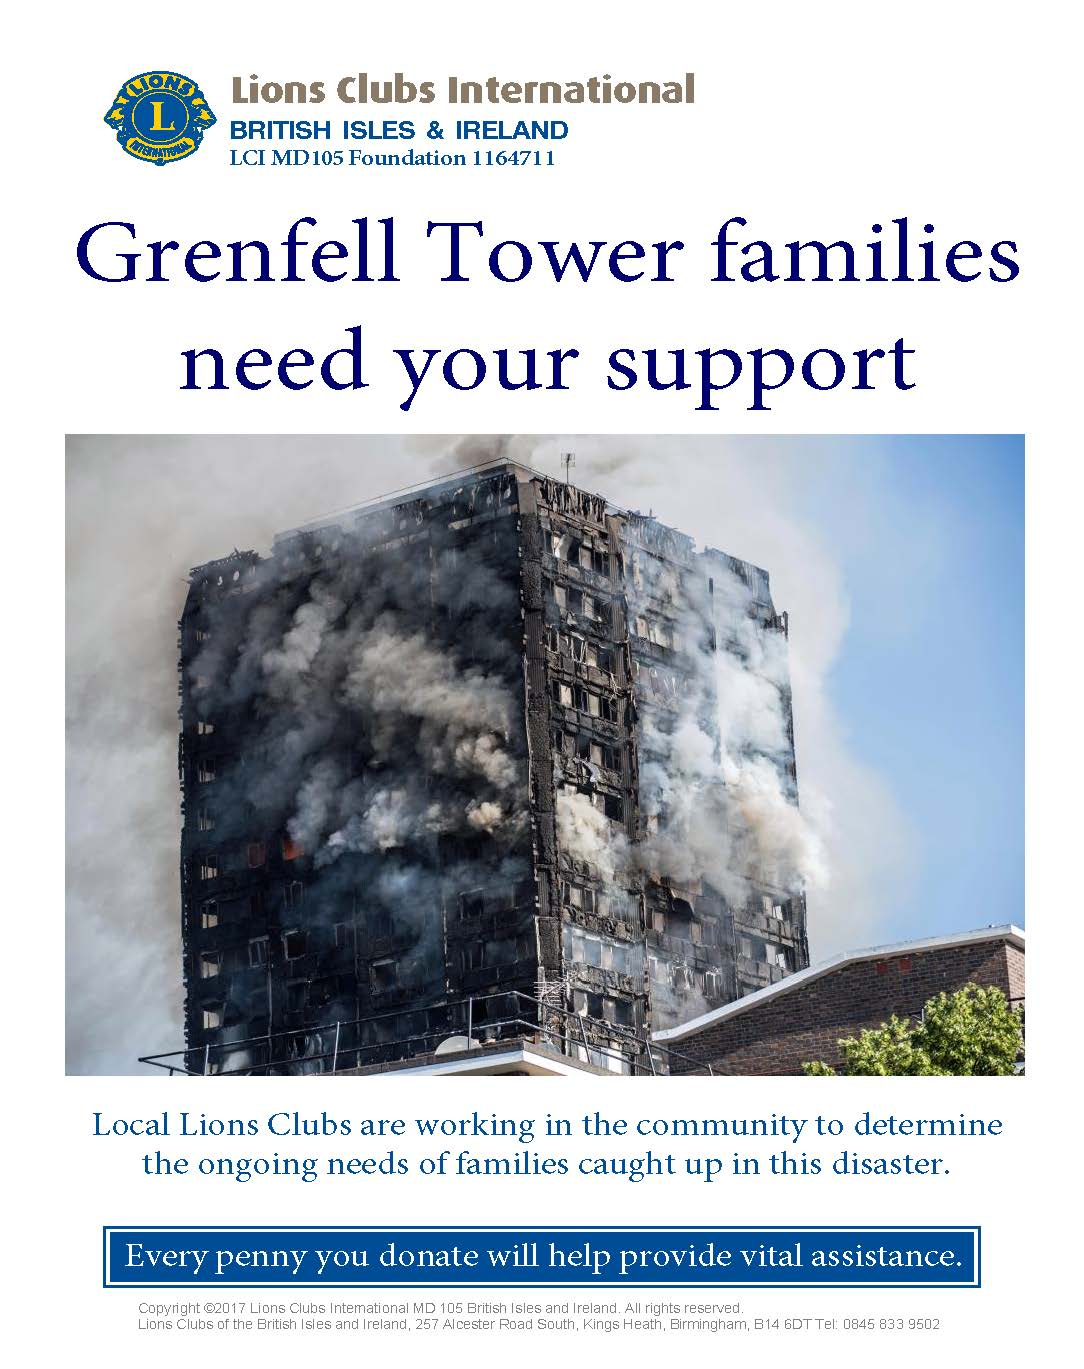 terrible disaster at Grenfell Tower in London